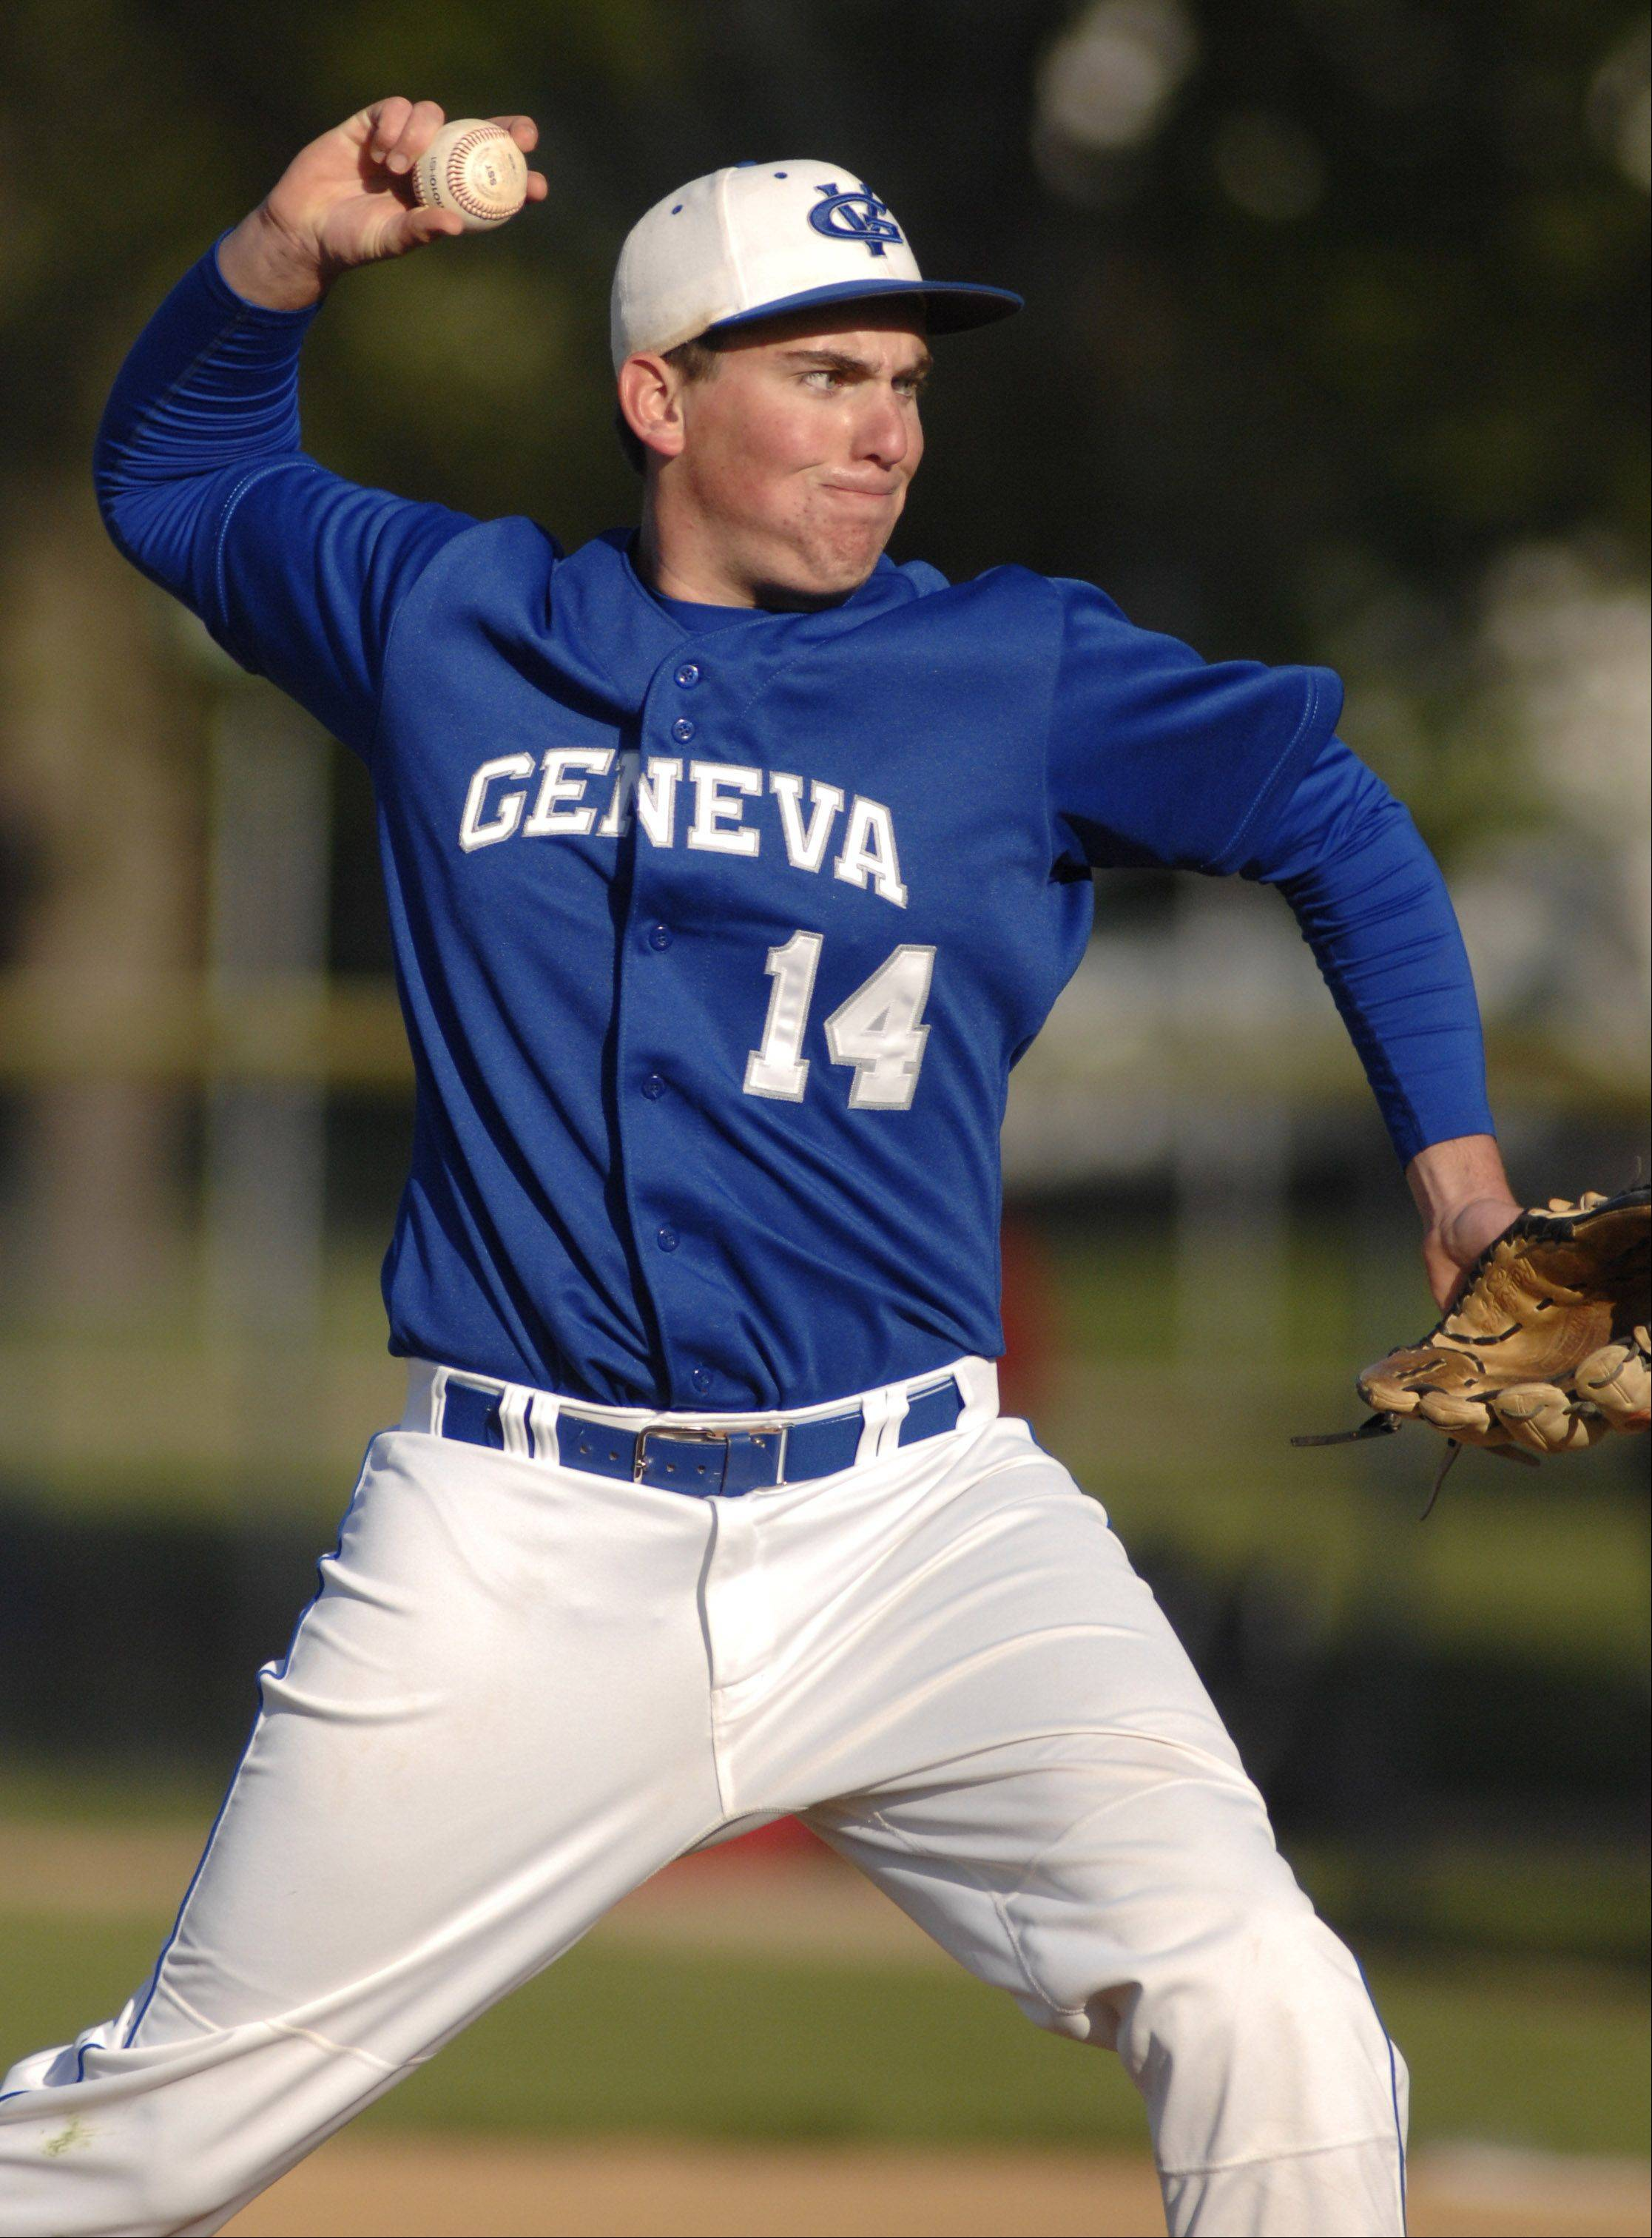 Geneva's Jeff Konrad pitches in the sixth inning on Thursday, April 26.